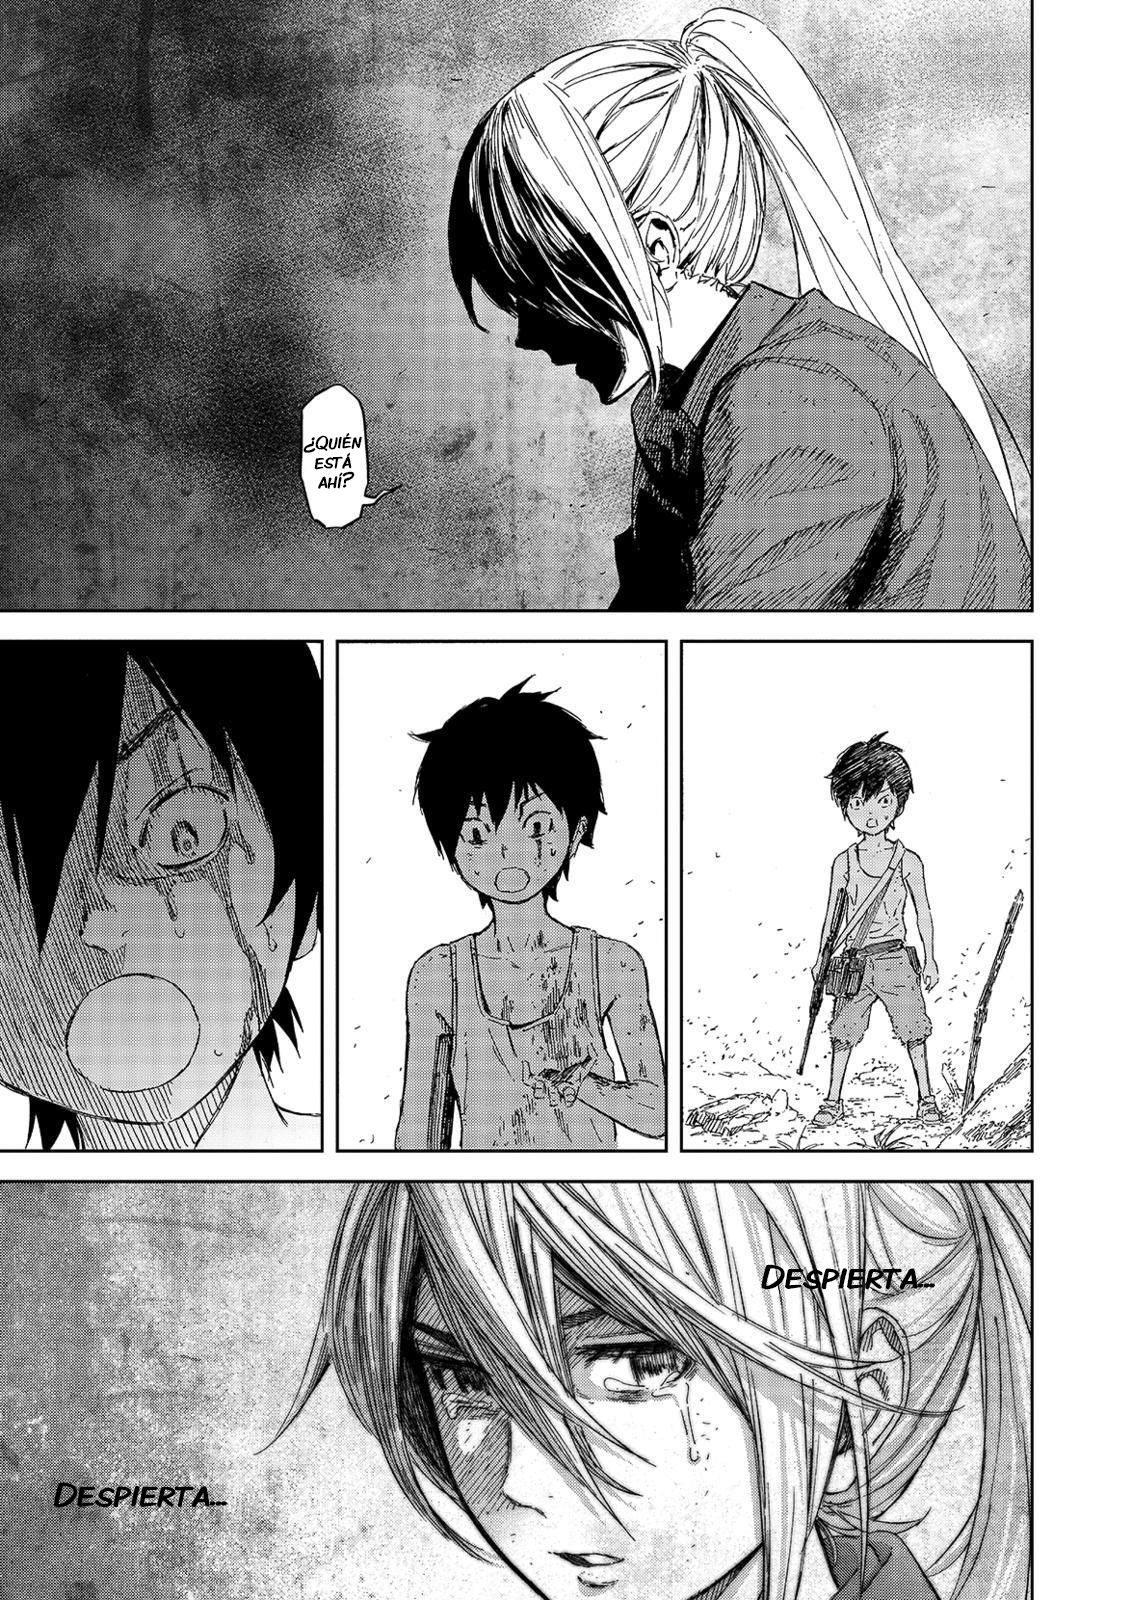 http://c5.ninemanga.com/es_manga/54/16310/456842/54bd2e952a9d004676014c021ccc7e50.jpg Page 4